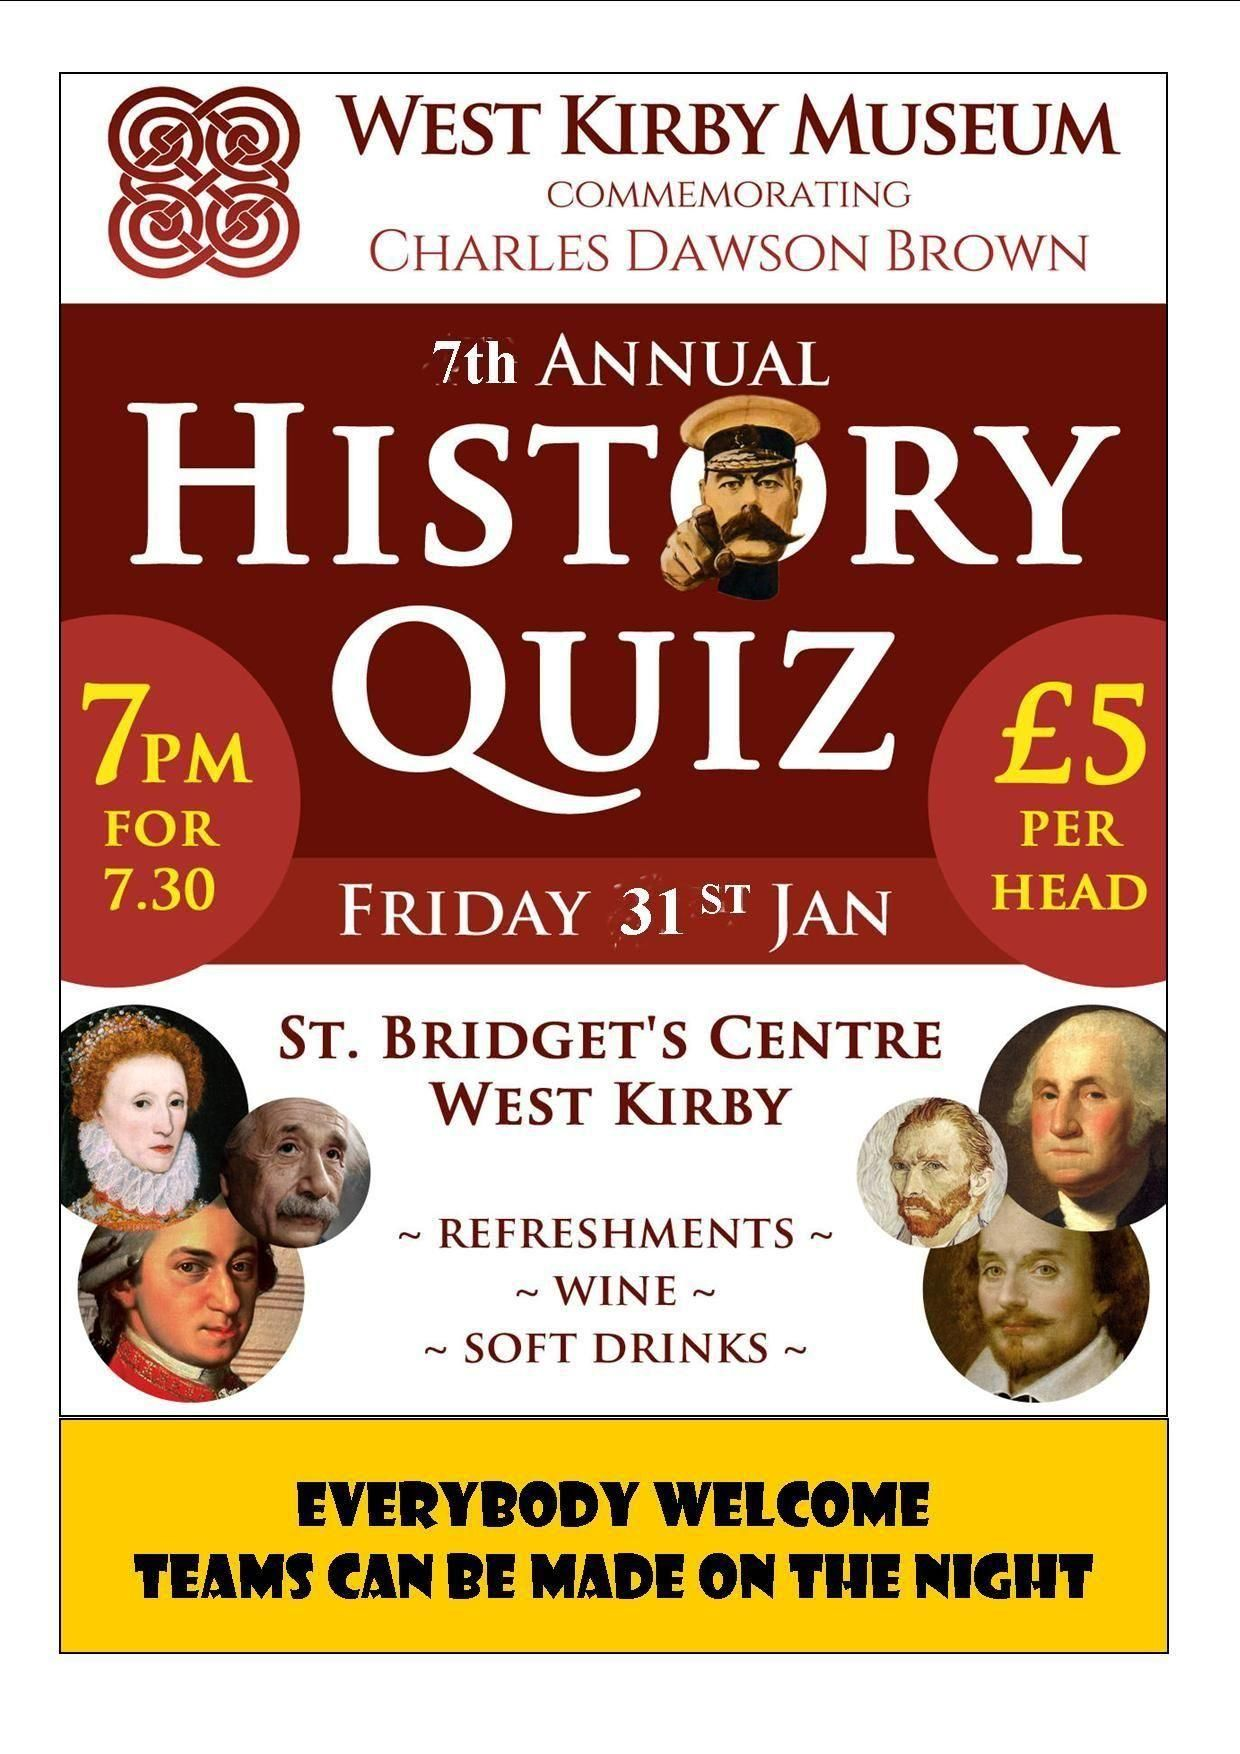 7th Annual History Quiz